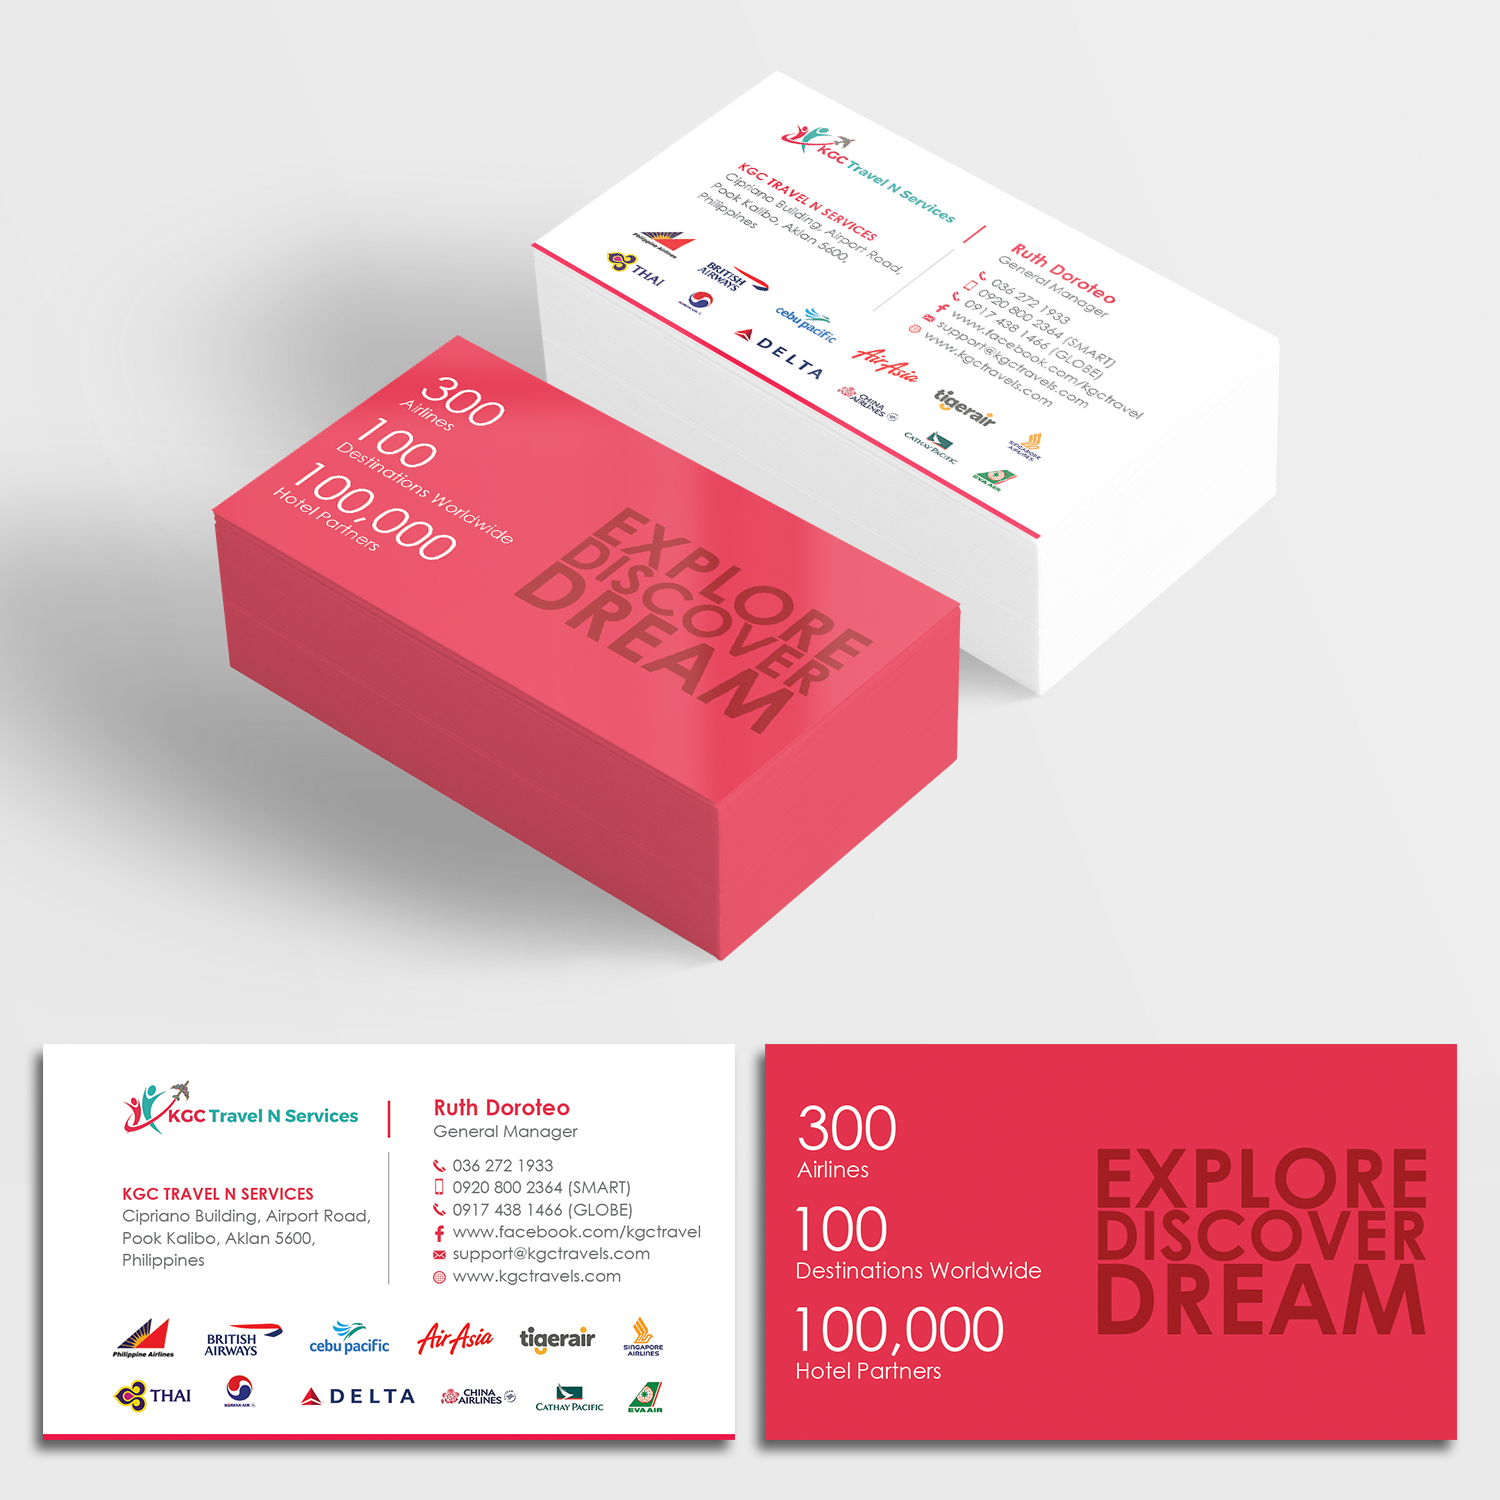 bold professional business card design for kgc travel n services